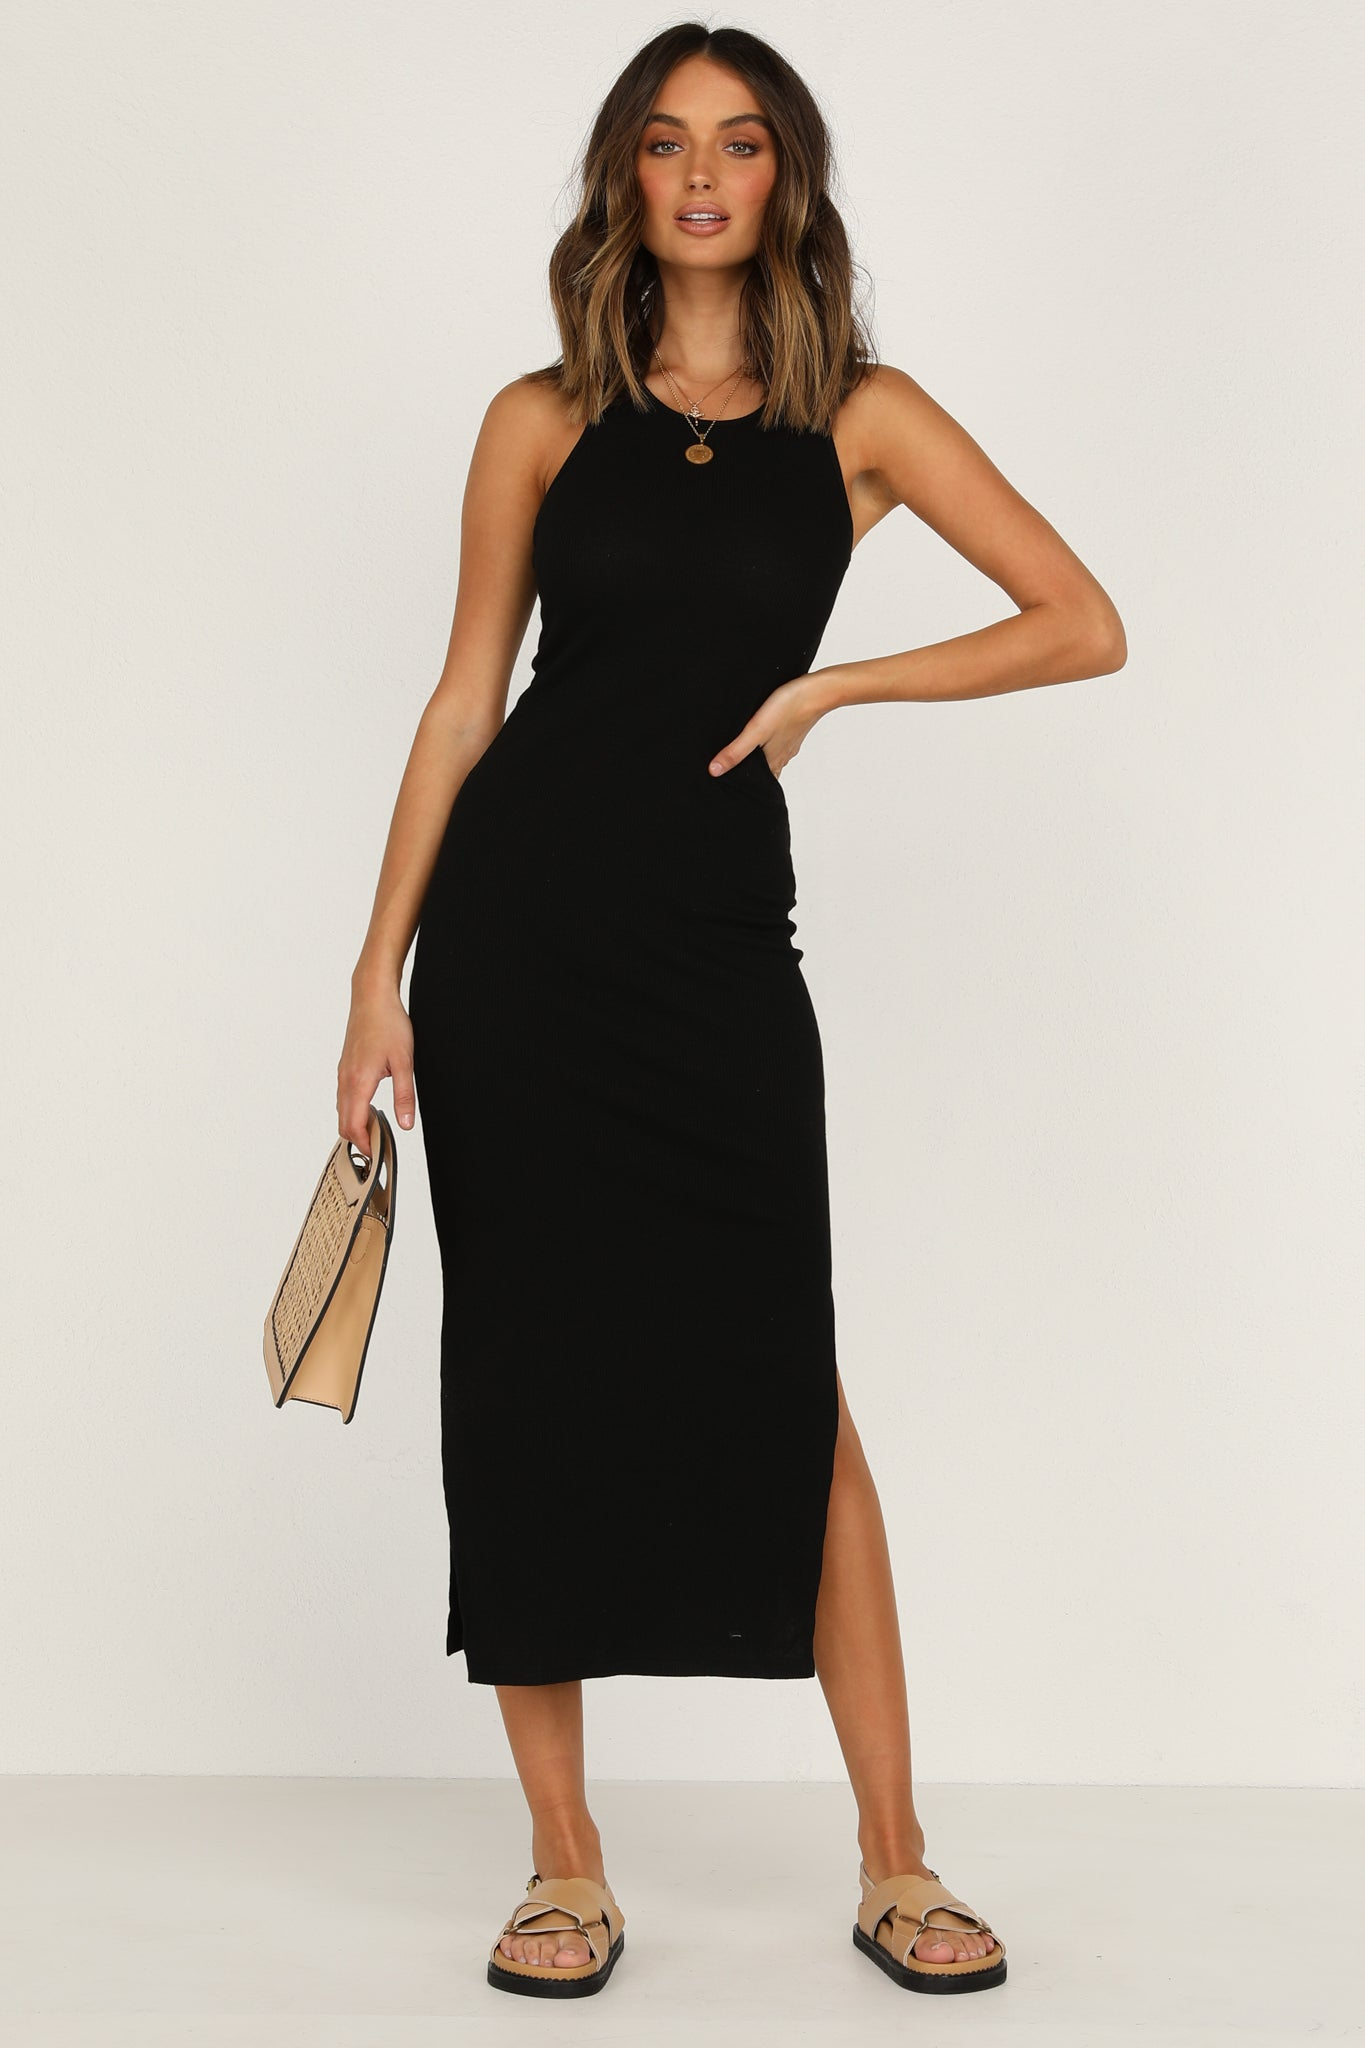 Estelle Dress (Black)